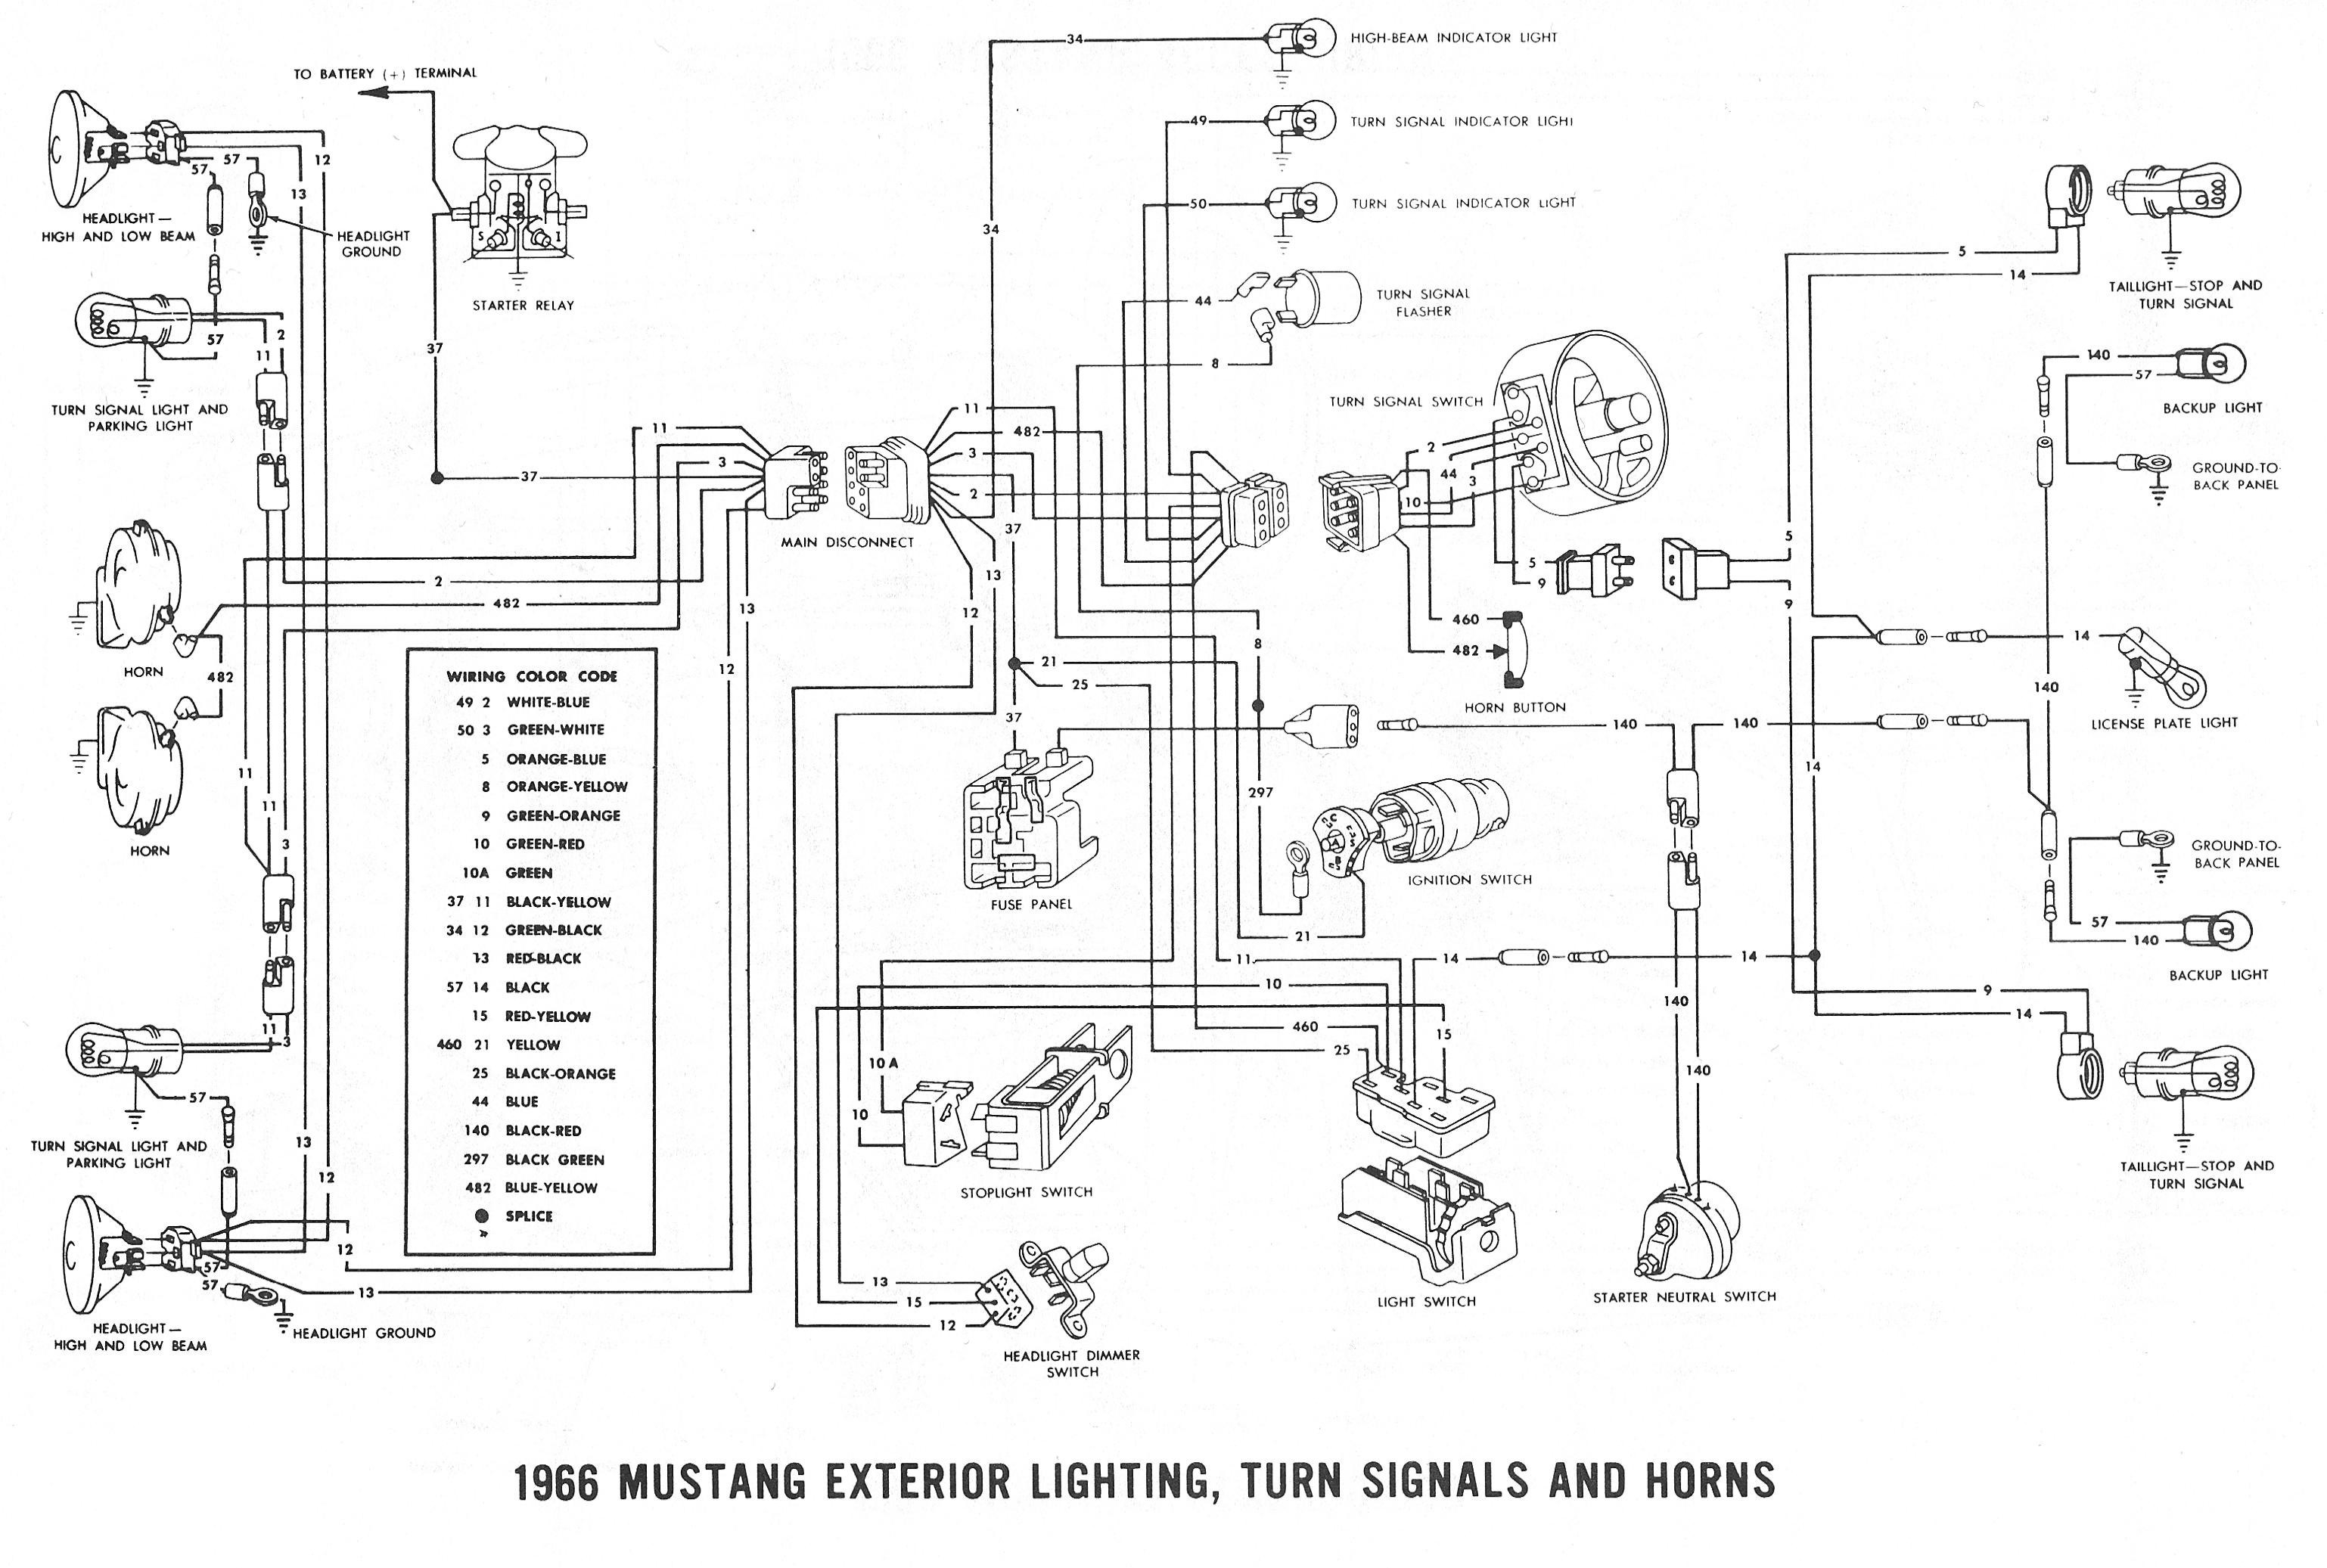 1966 Mustang Wiring Diagram New Wiring Diagram the Panel with 66 Mustang 99 Magnificent 1966 Afif